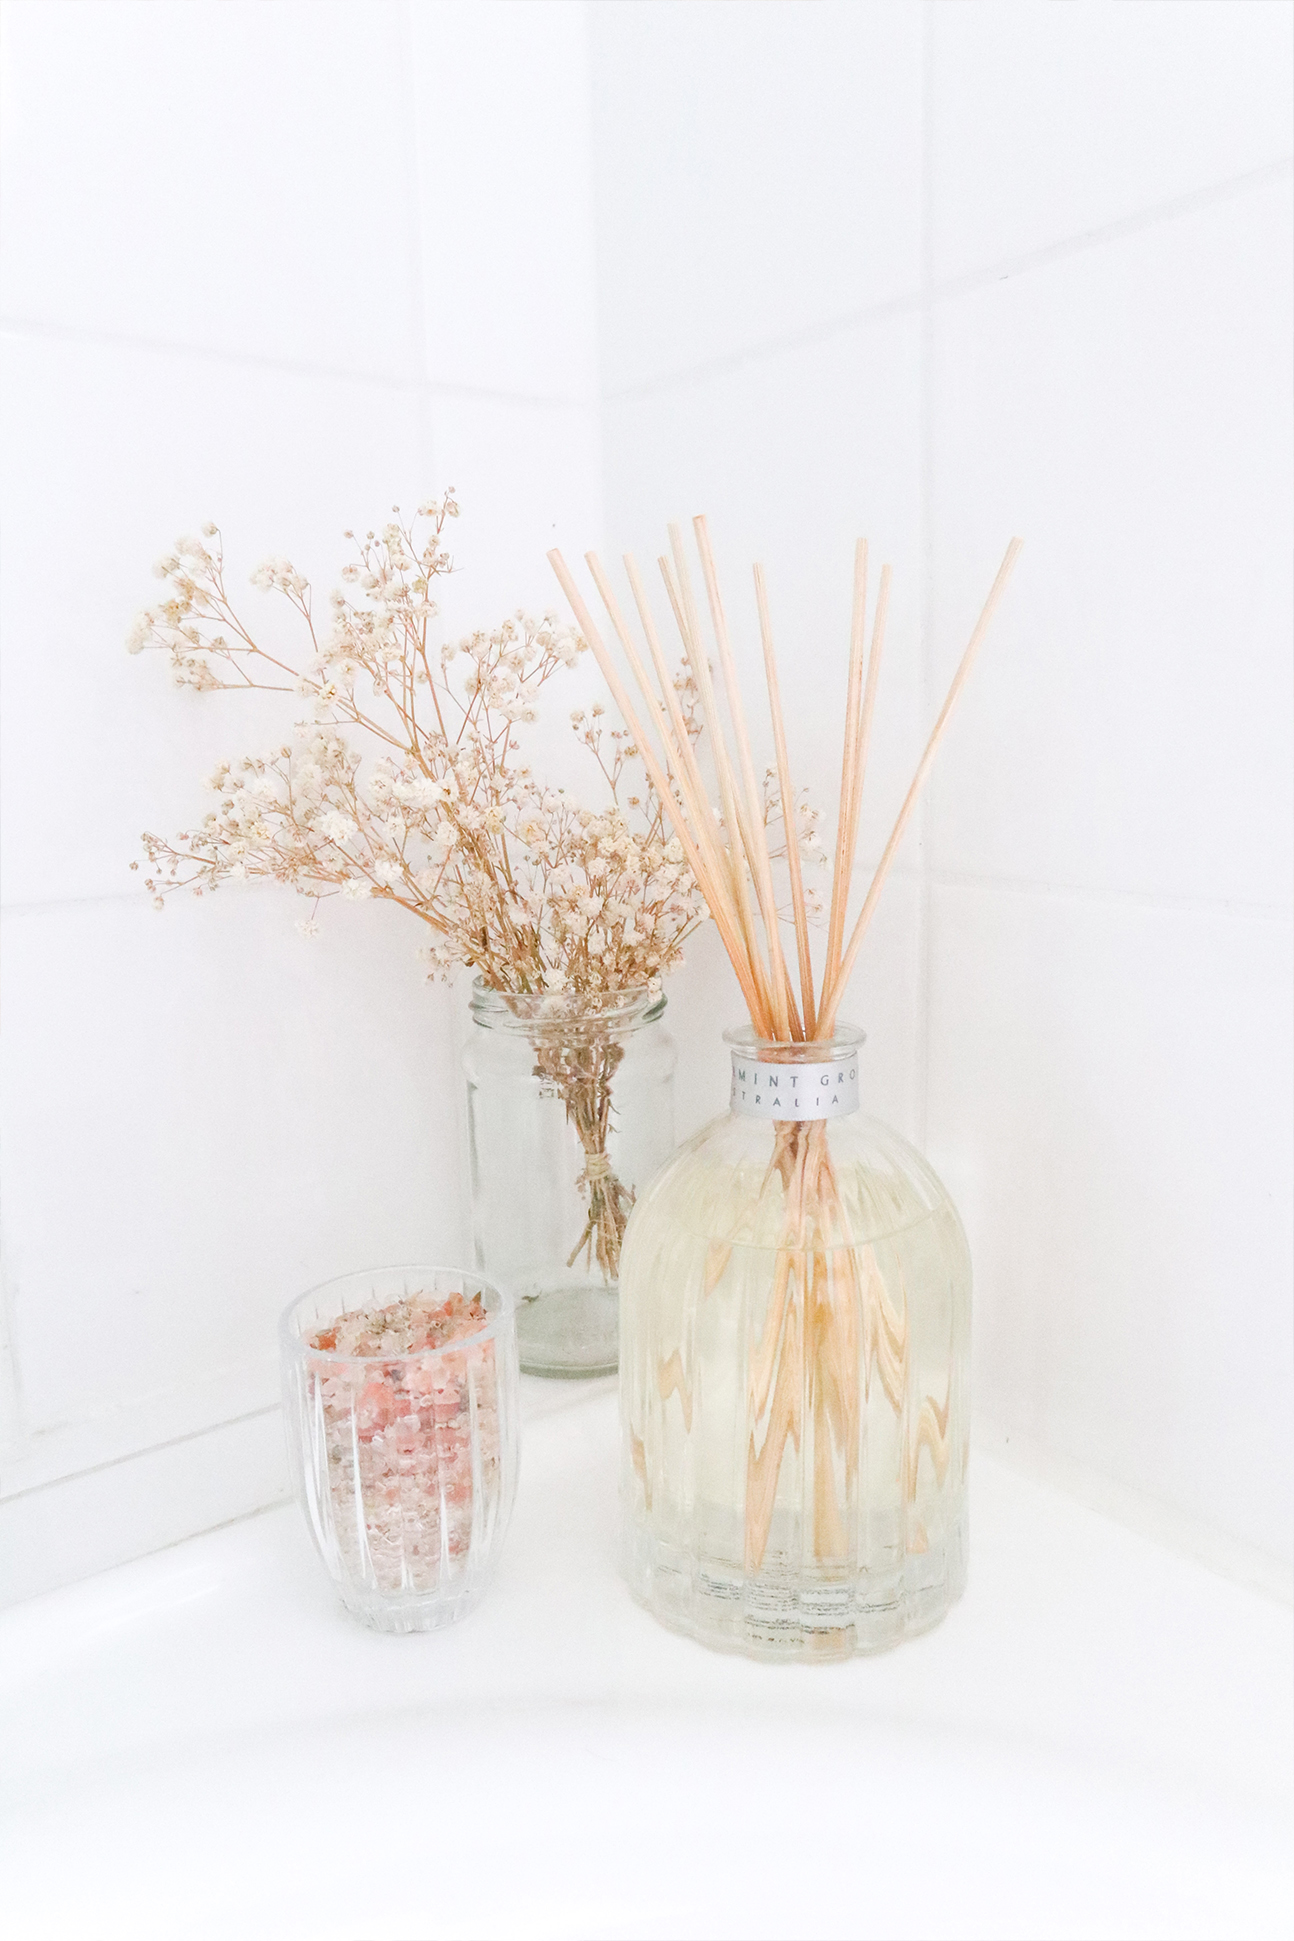 content creation, photography and styling of candle and diffuser for peppermint grove by caitlin hope